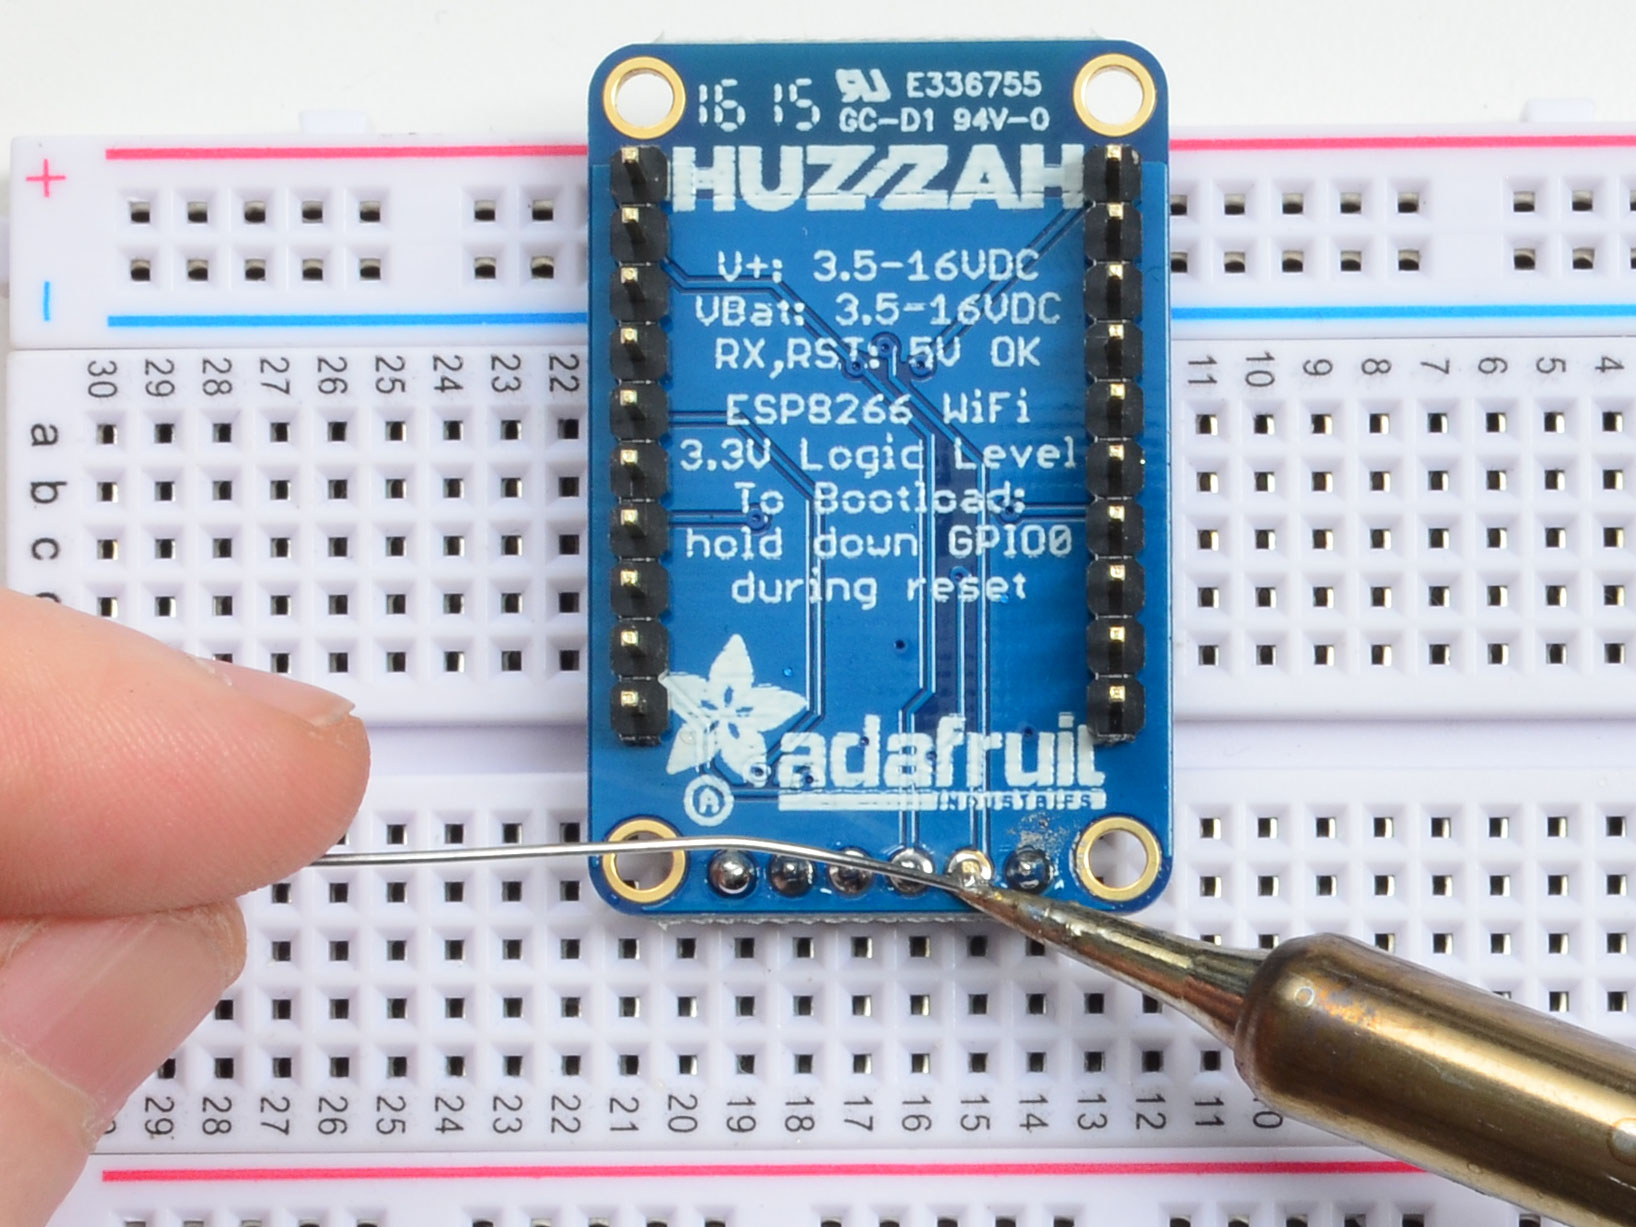 adafruit_products_solder9.jpg